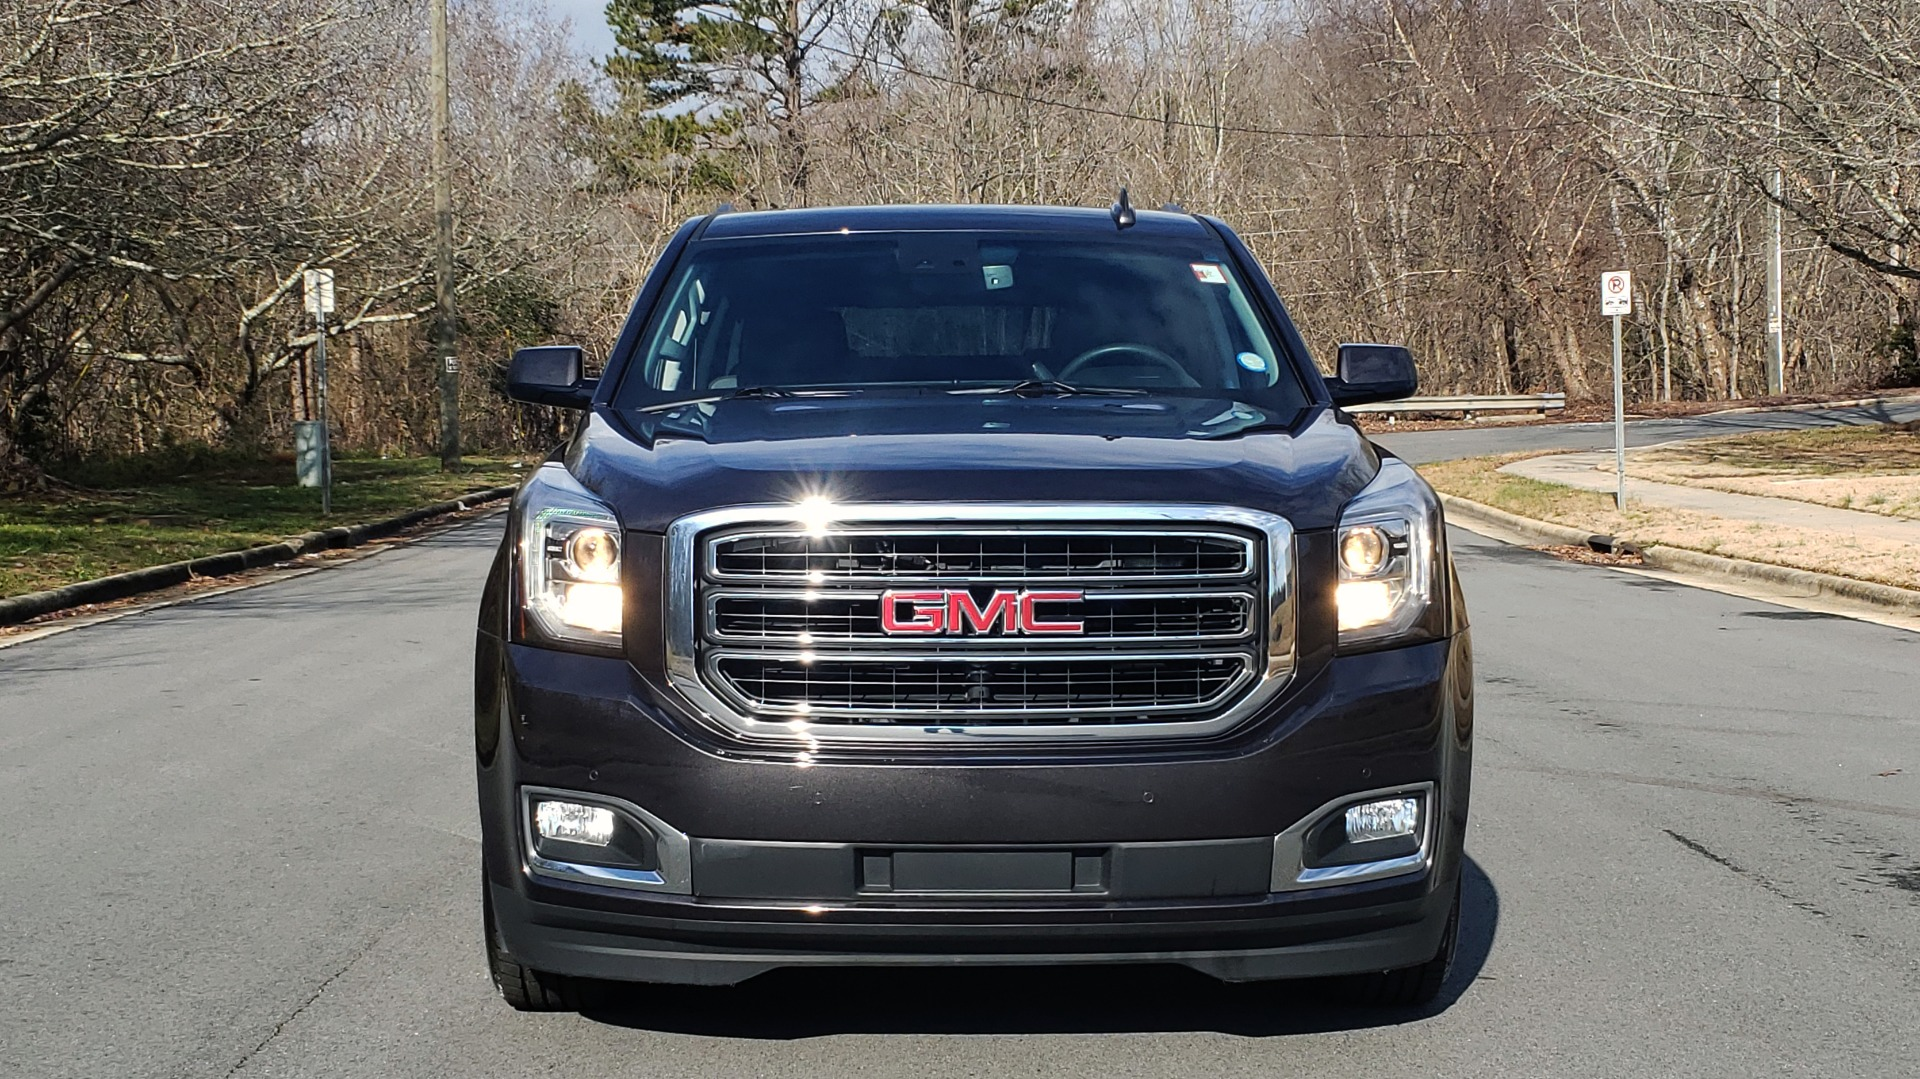 Used 2017 GMC YUKON XL SLT 4X4 / NAV / SUNROOF / BOSE / 3-ROW / REARVIEW for sale Sold at Formula Imports in Charlotte NC 28227 23